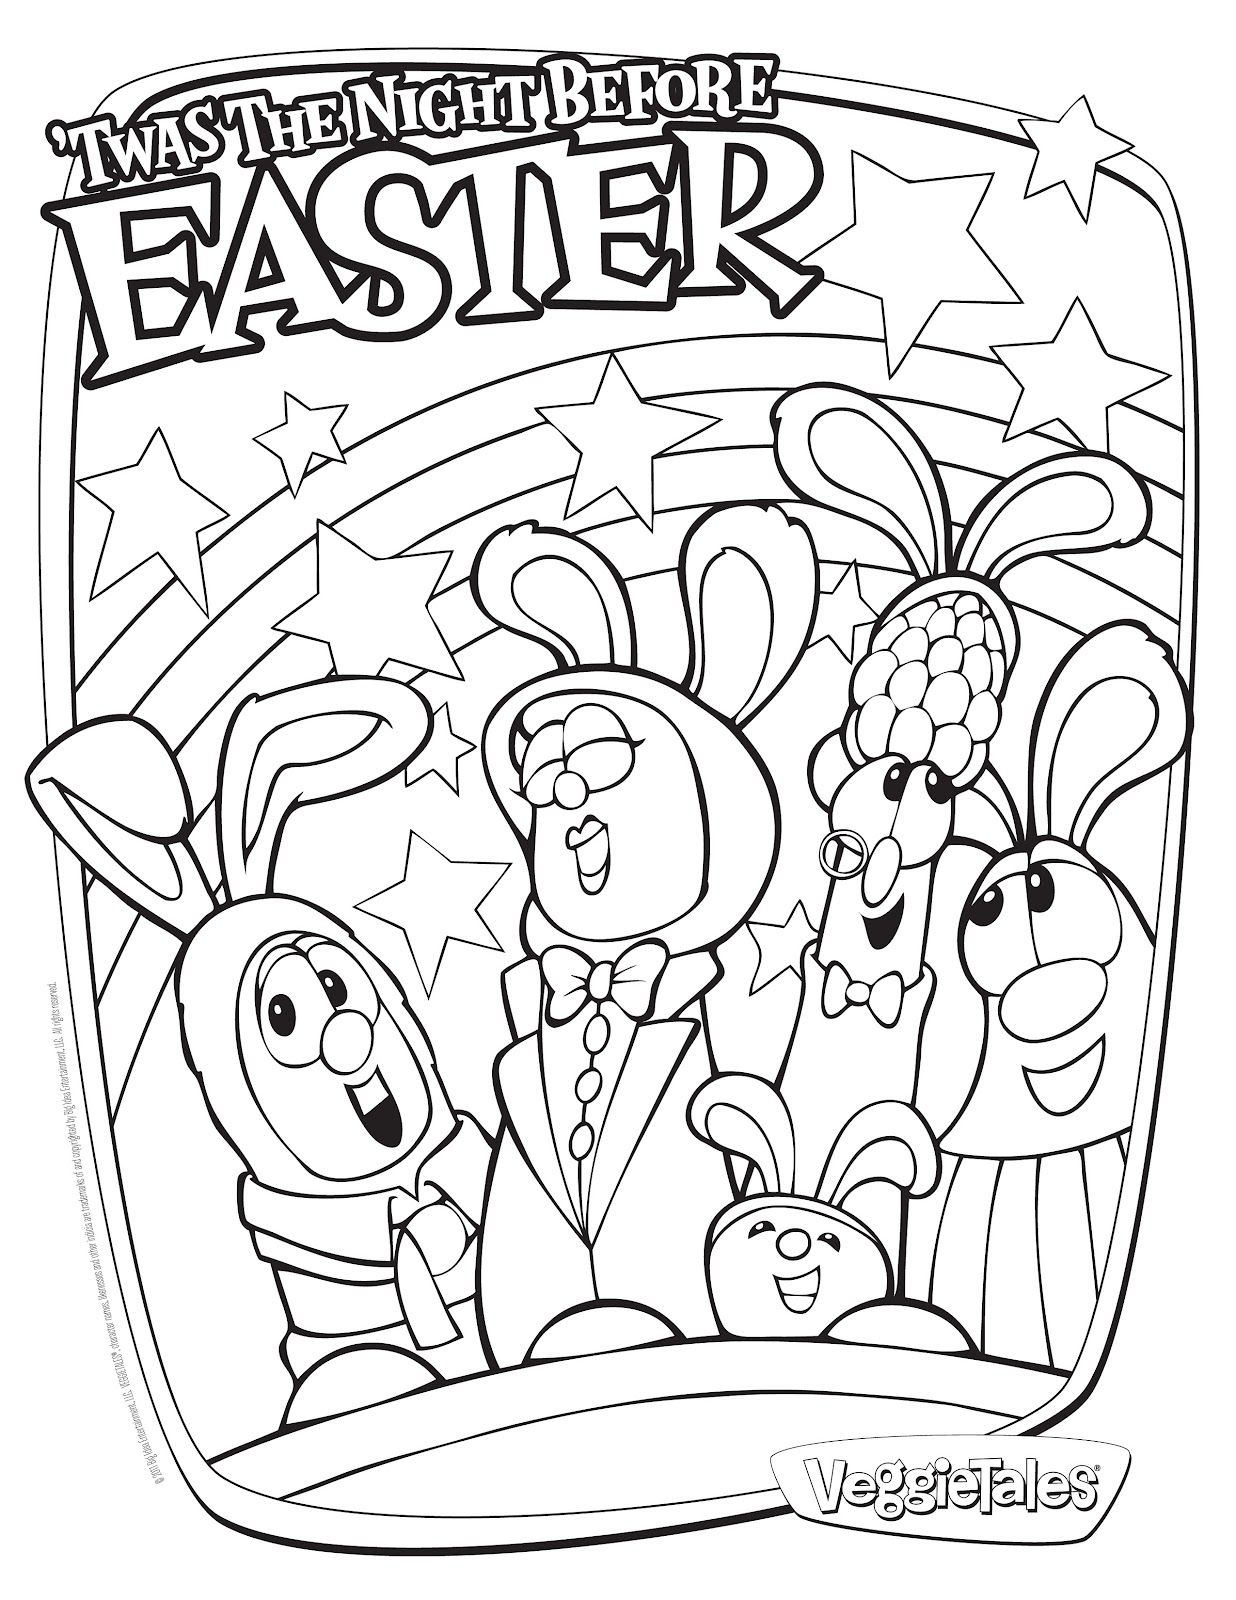 29 Coloring Pages Easter Religious Collection - Coloring Sheets